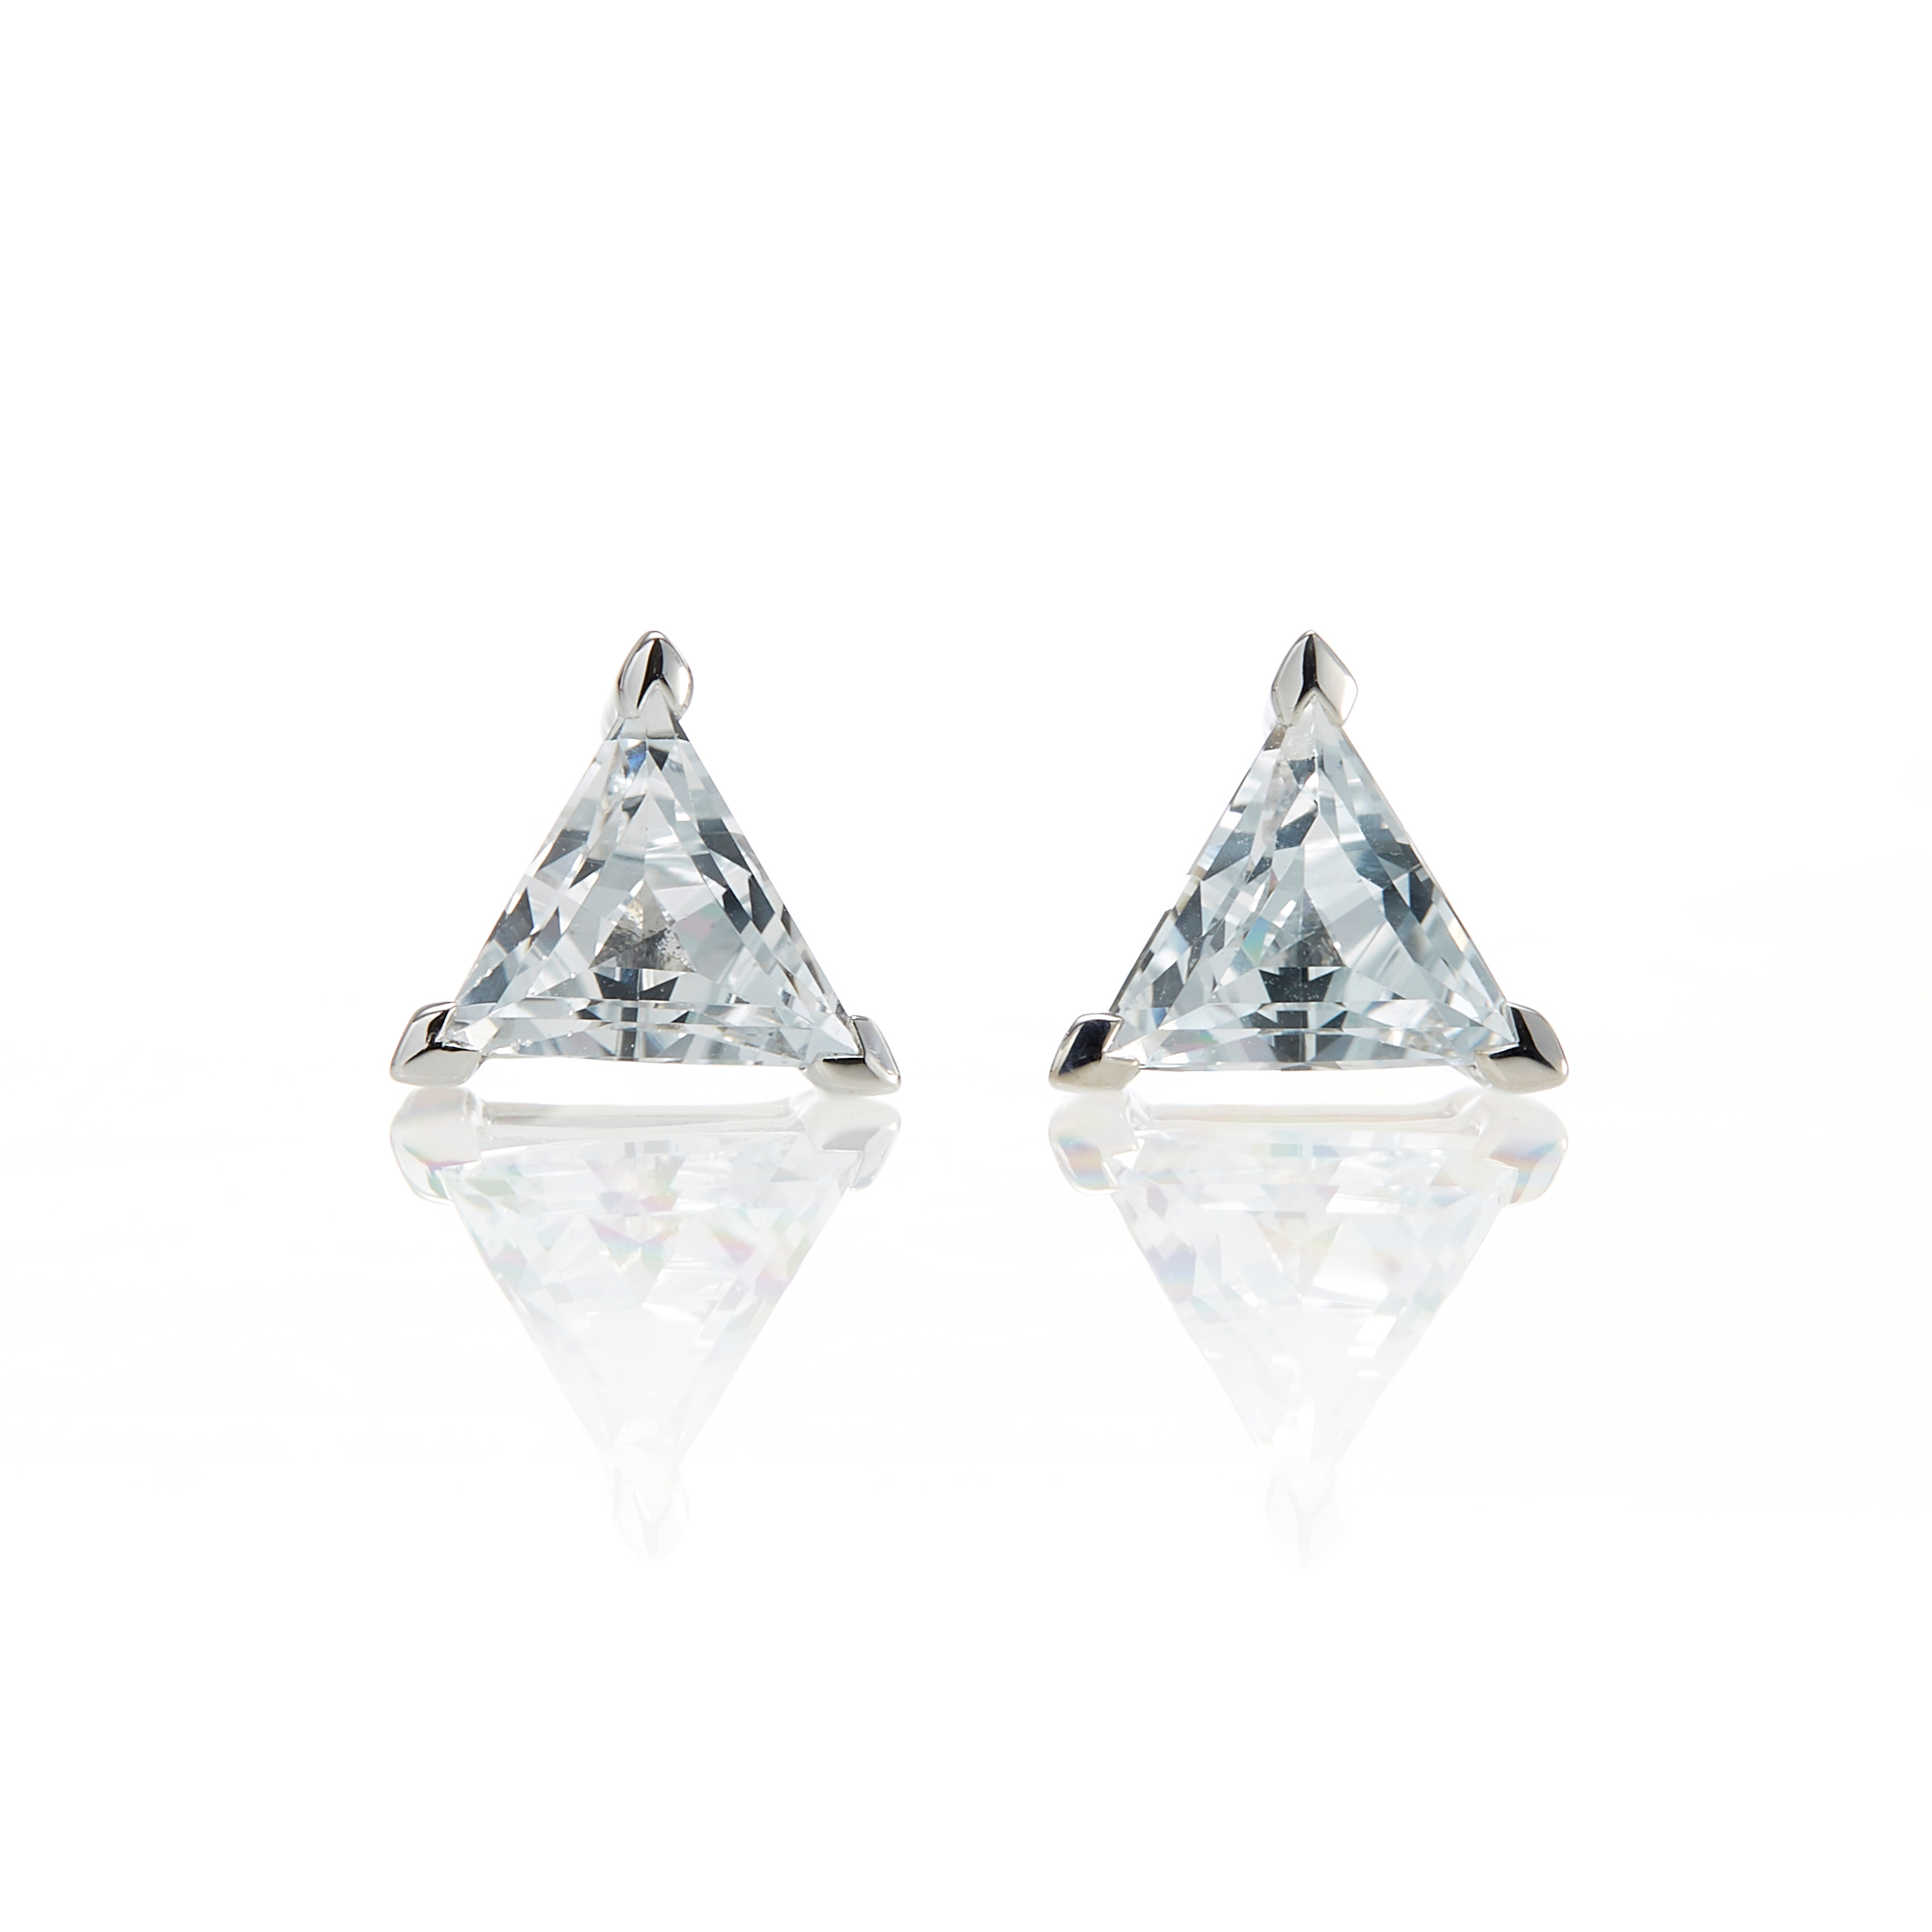 Gump's Triangle White Topaz Stud Earrings